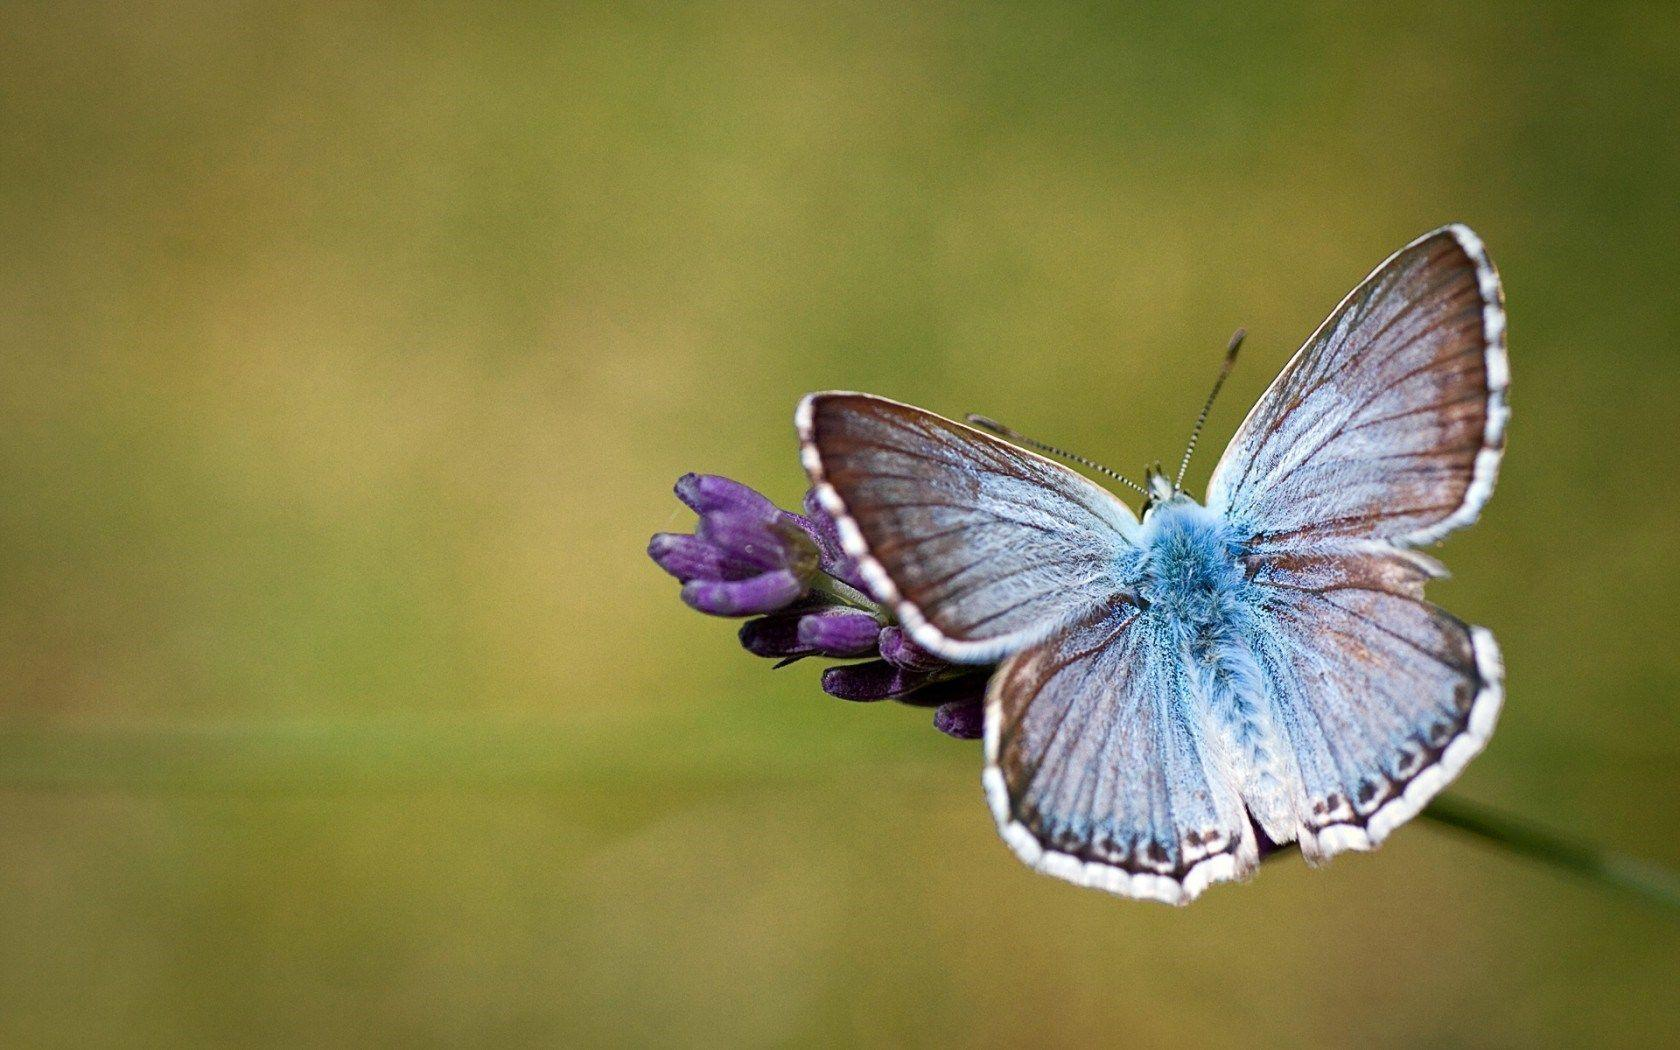 butterfly hq wallpaper 1024x768 - photo #13